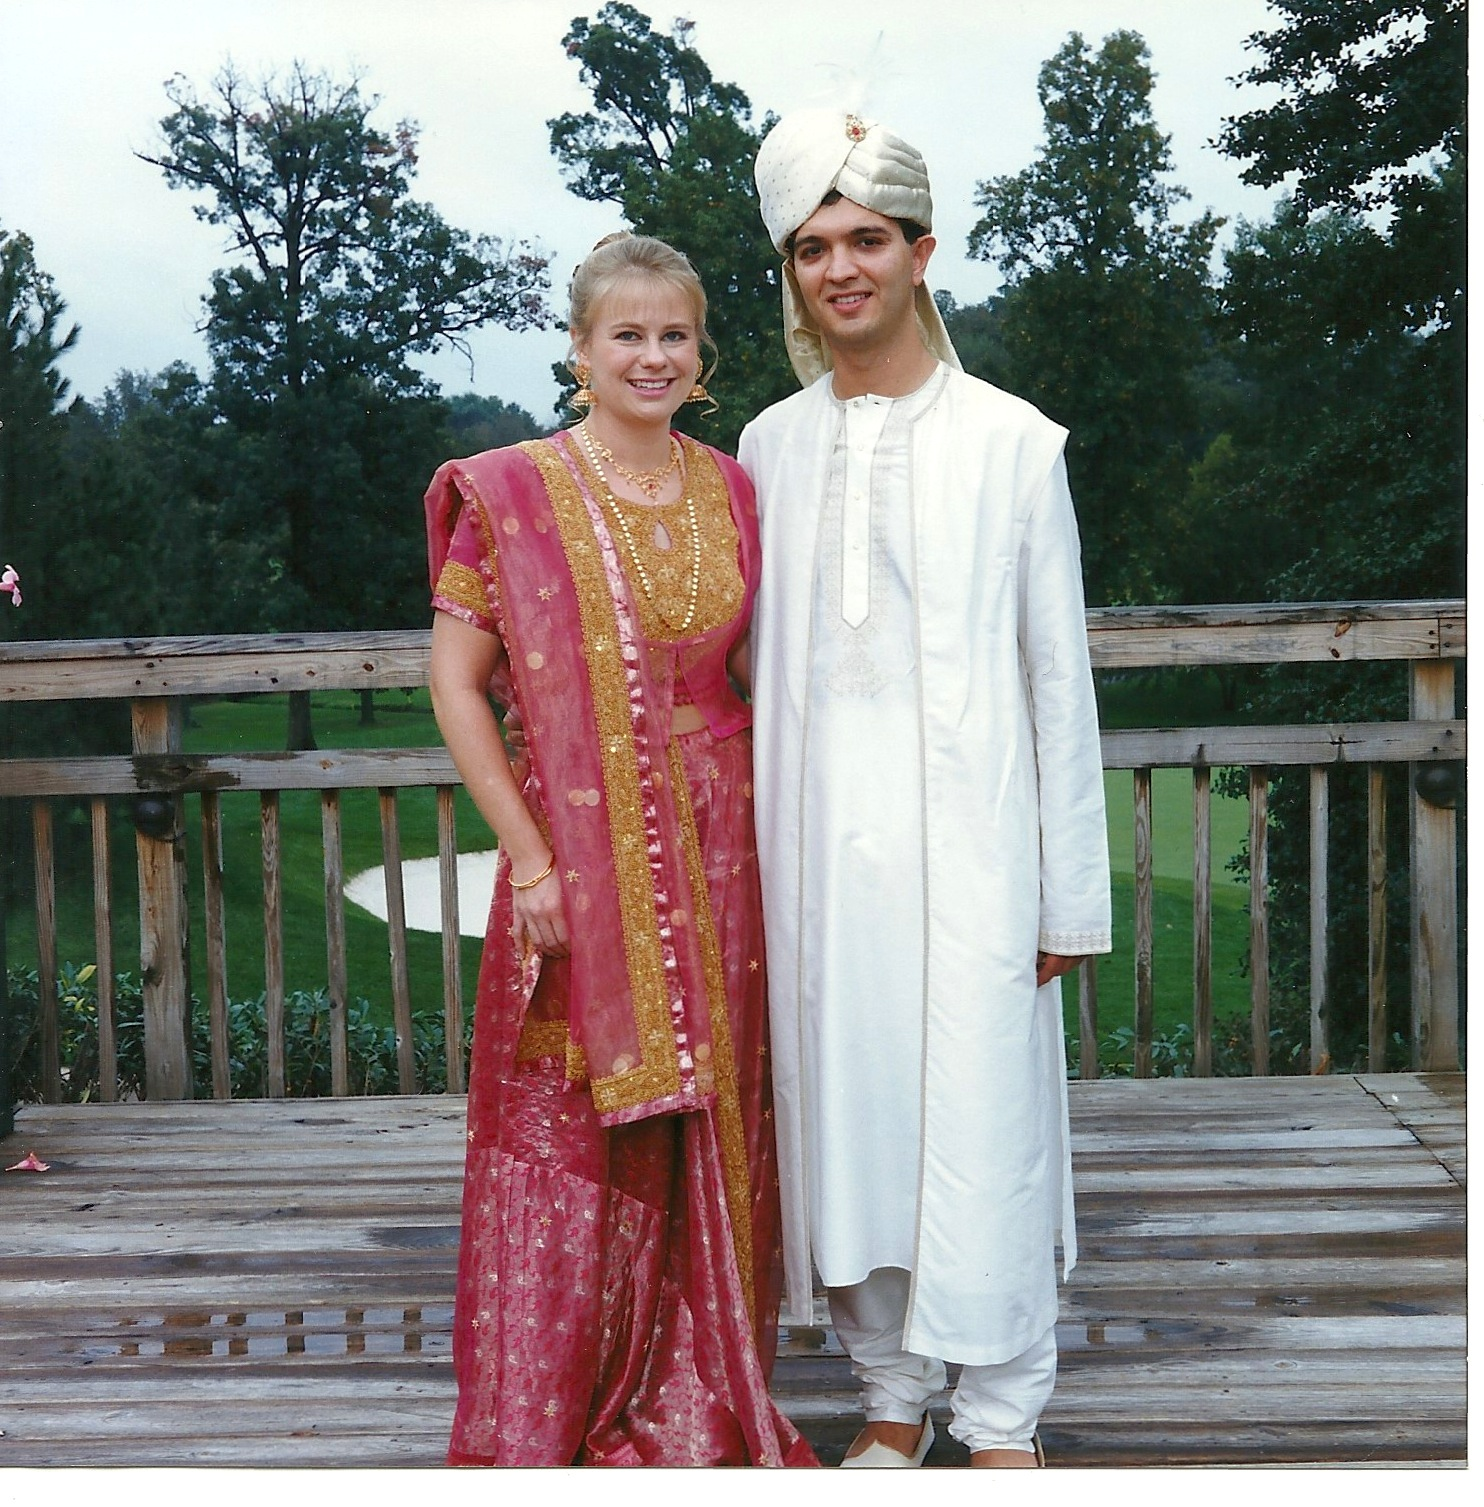 Today My Husband Prithvi And I Are Celebrating 14 Years Of Marriage Almost 20 Together